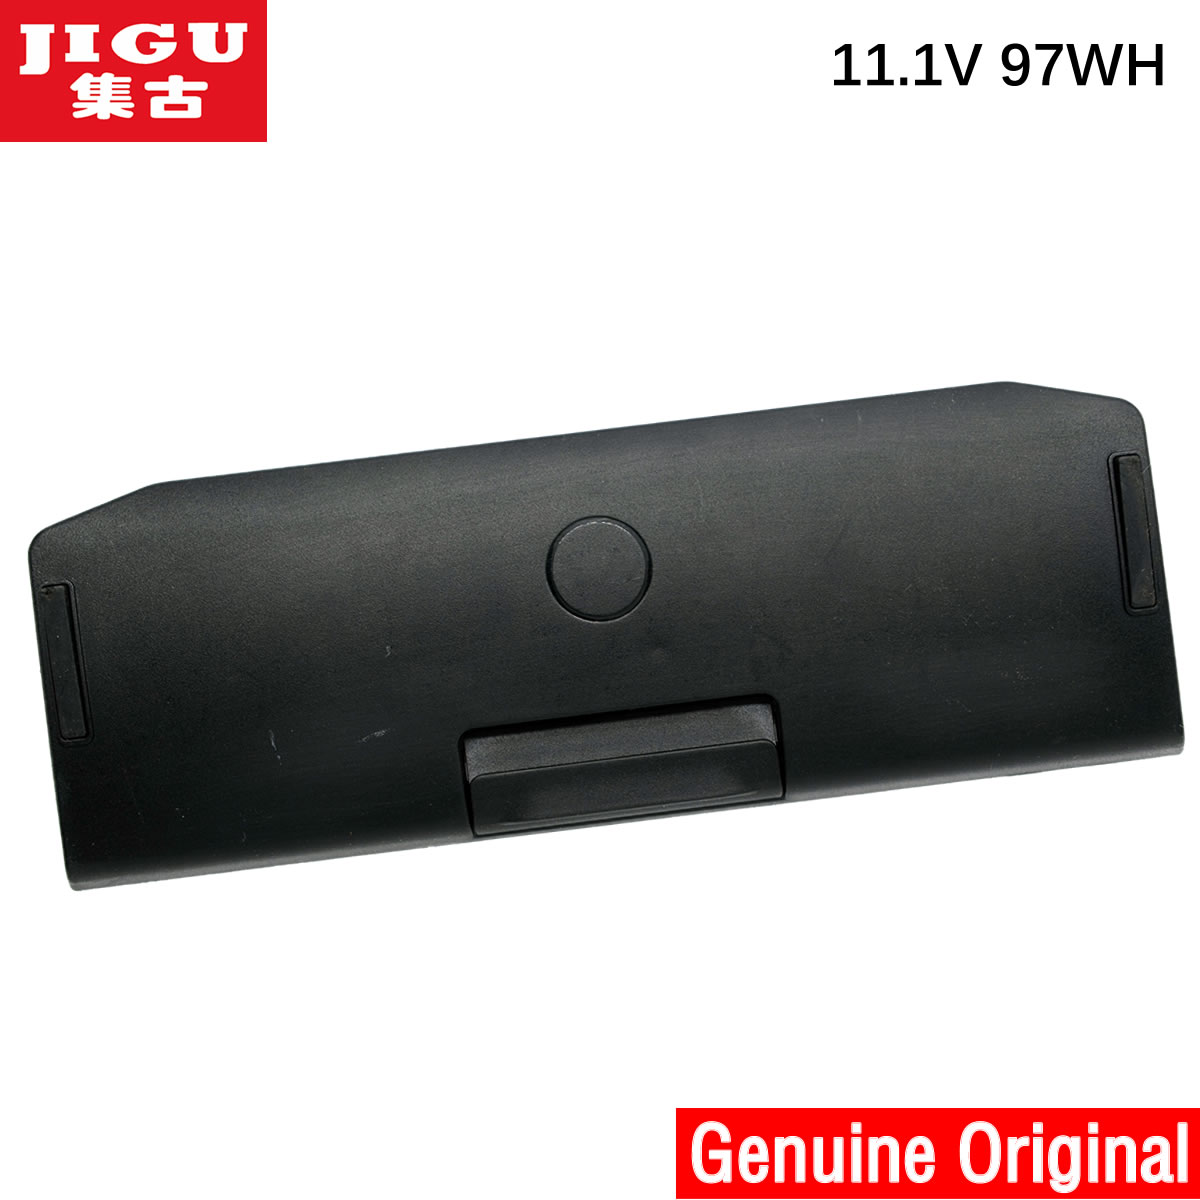 JIGU CWVXW Original laptop Battery For DELL For Latitude E6430 ATG E5440 E6320 E6540 E6440 for Precision M4800 M6800